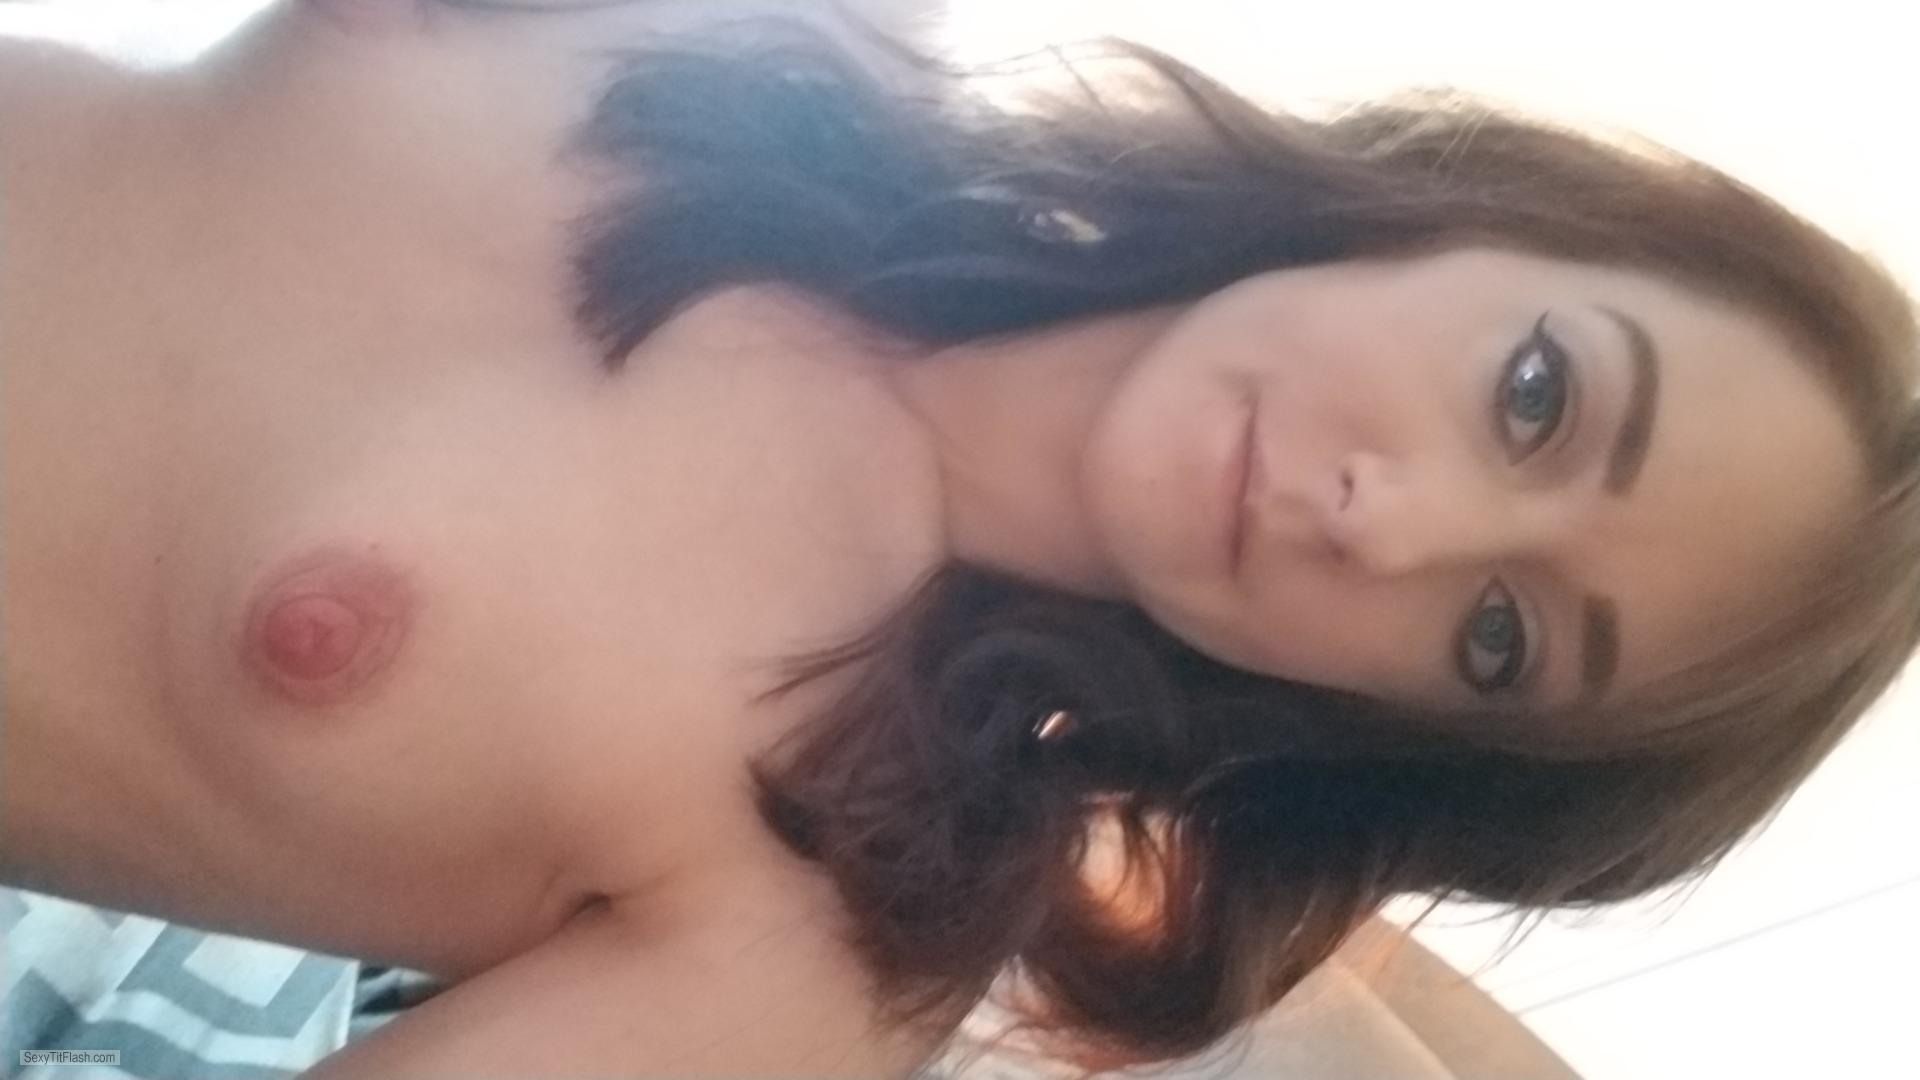 Tit Flash: My Very Small Tits (Selfie) - Topless Tiny Tina from United States